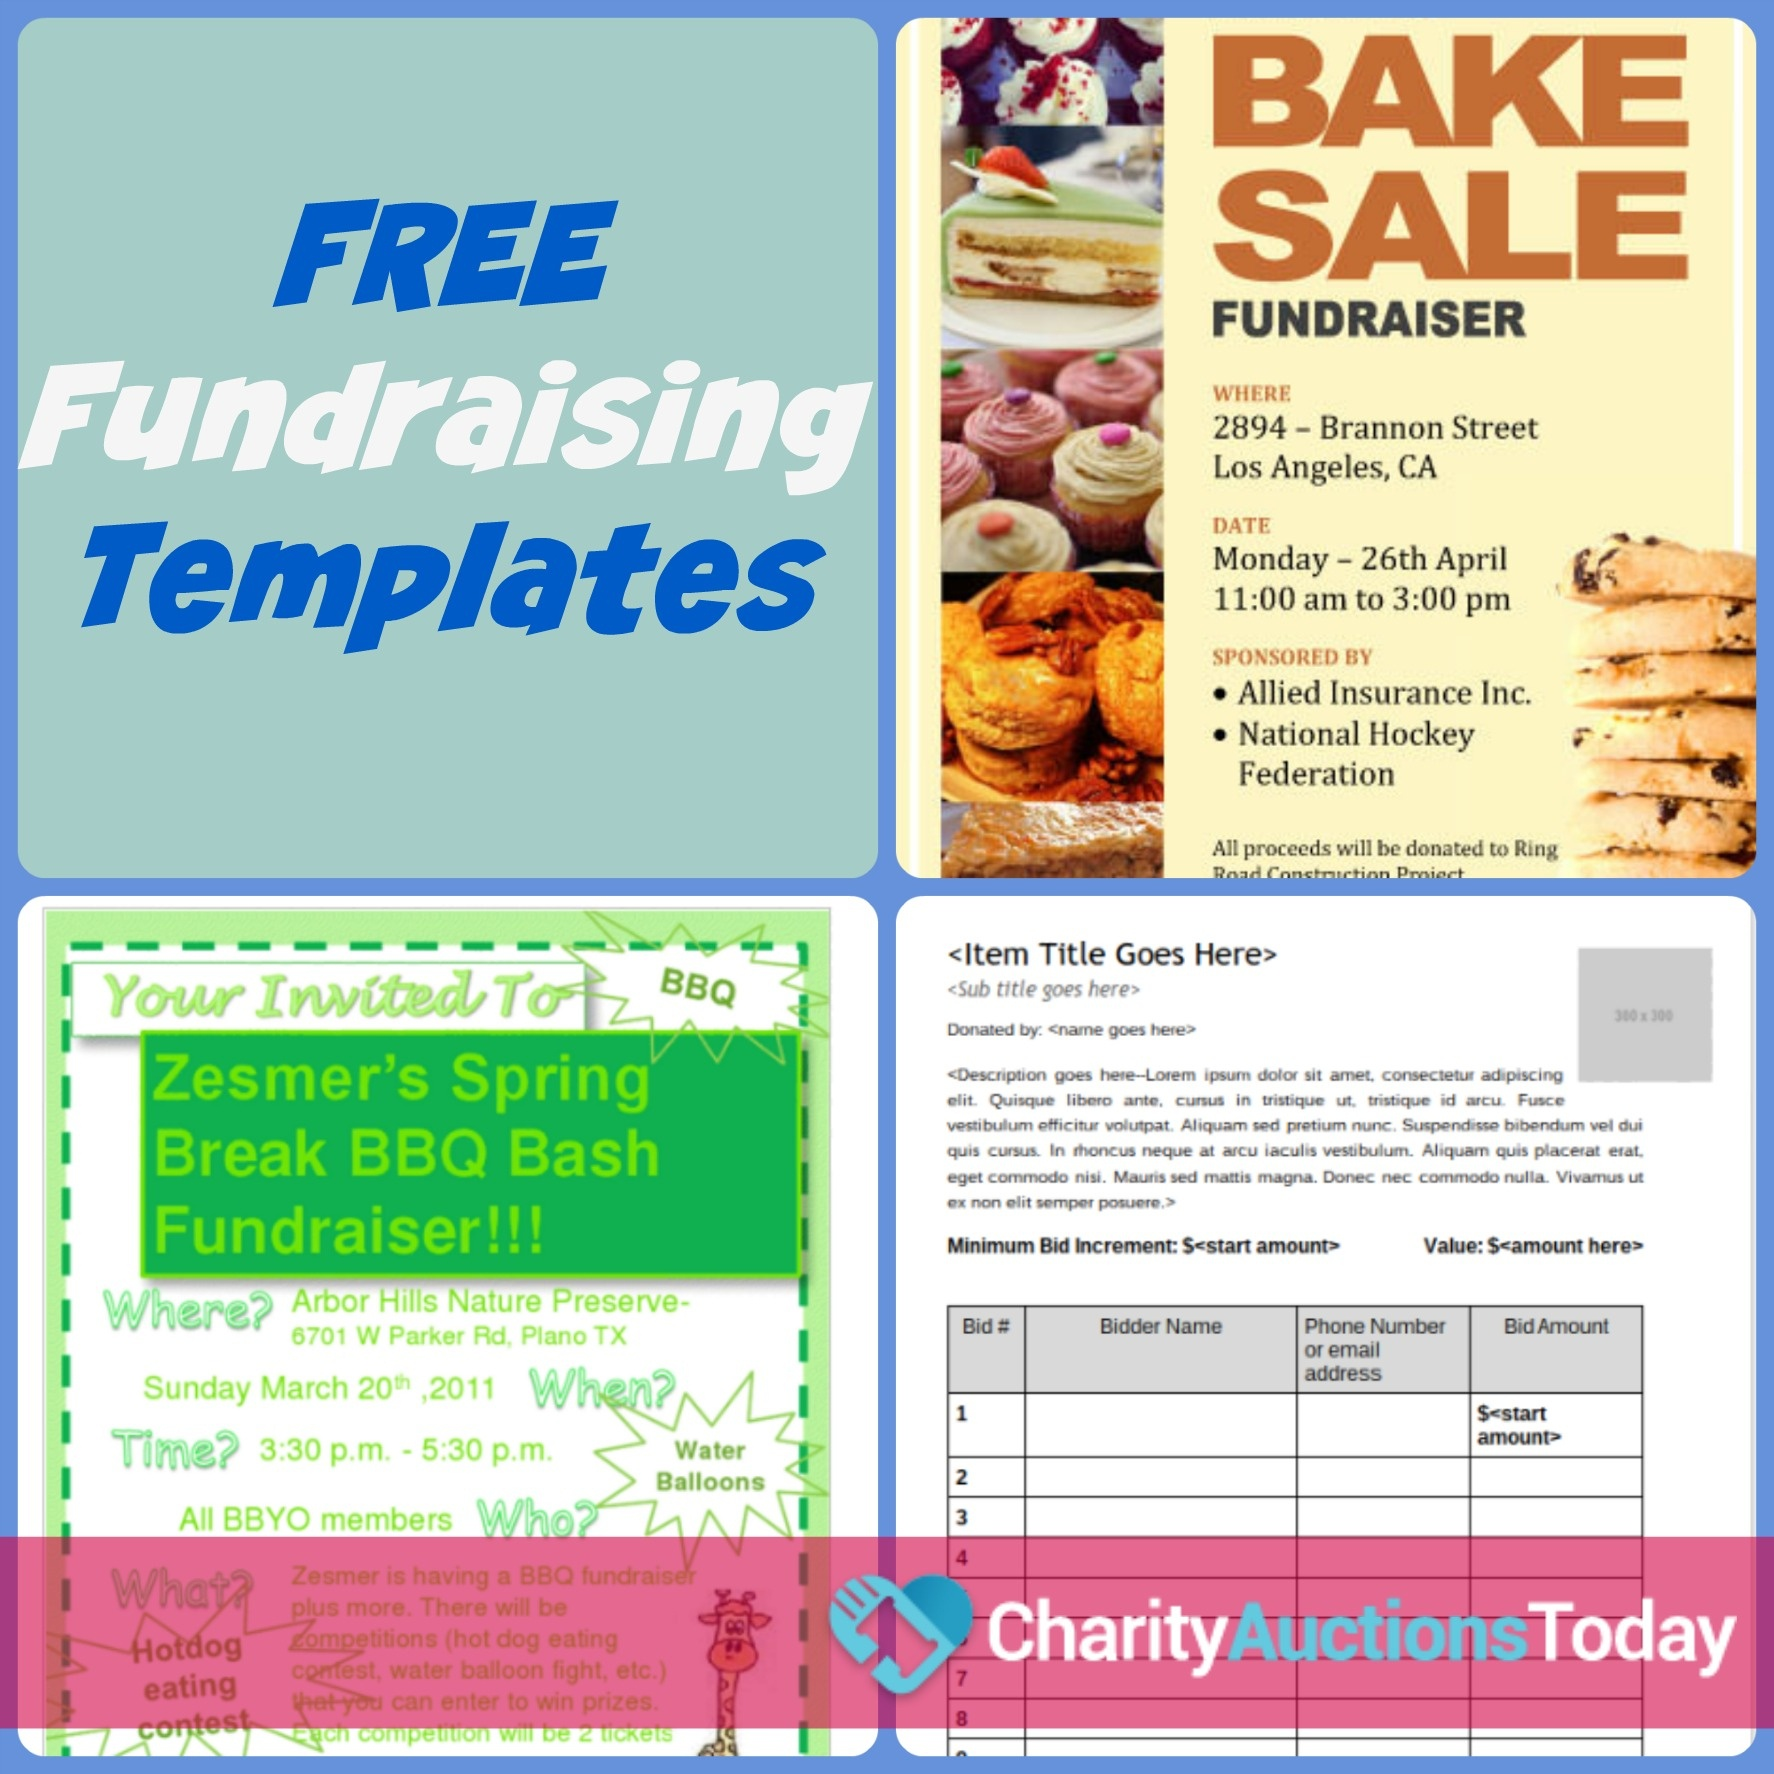 Free Fundraiser Flyer | Charity Auctions Today - Free Printable Event Flyer Templates